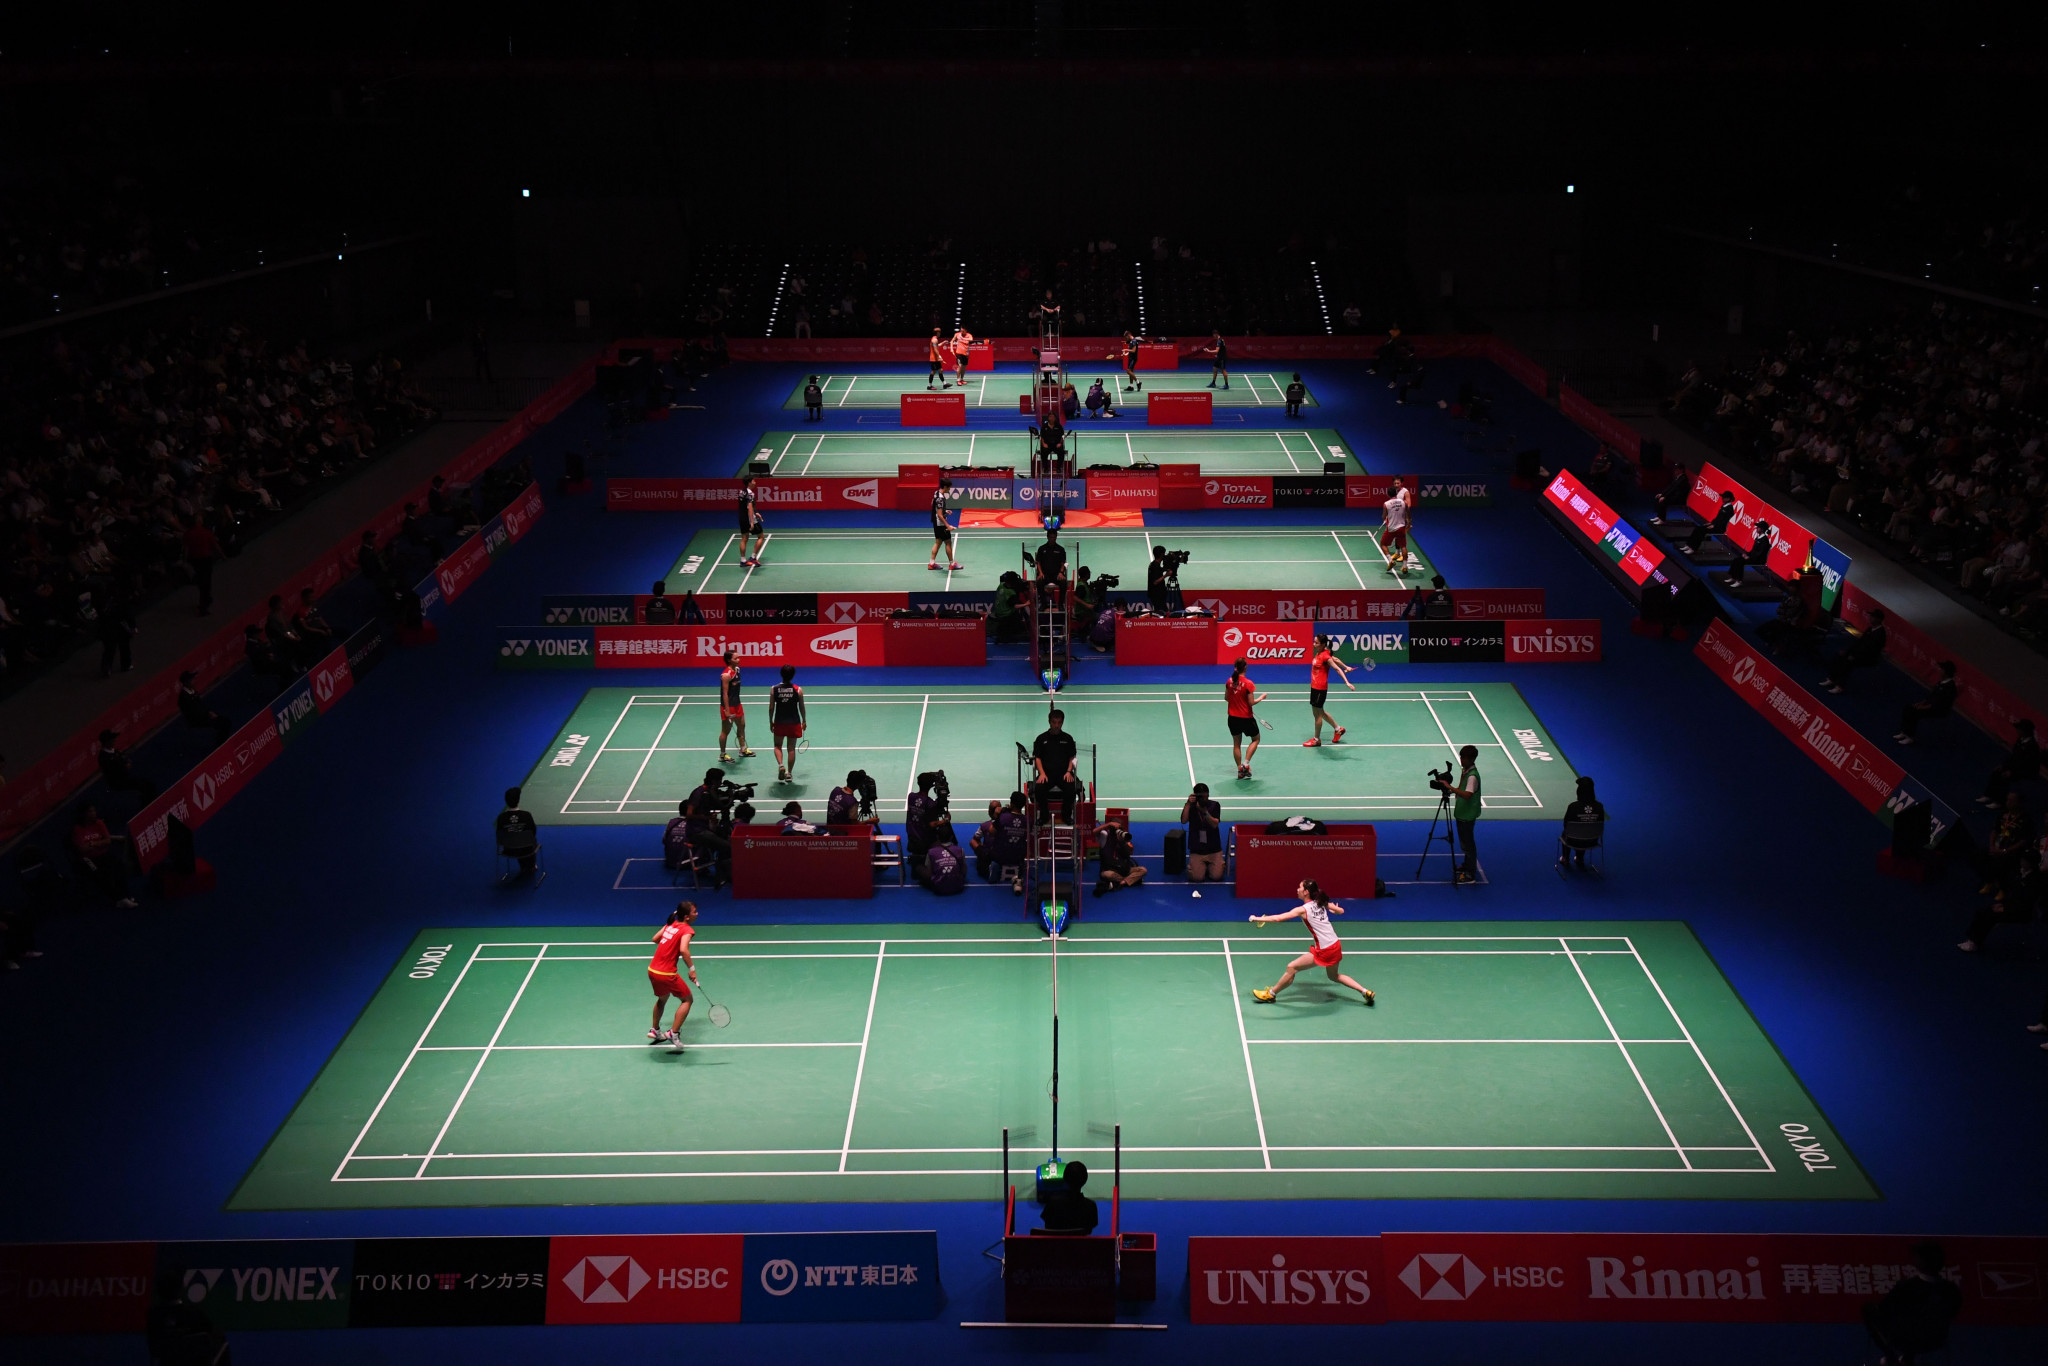 Momota aiming to rediscover form at Tokyo 2020 badminton test event